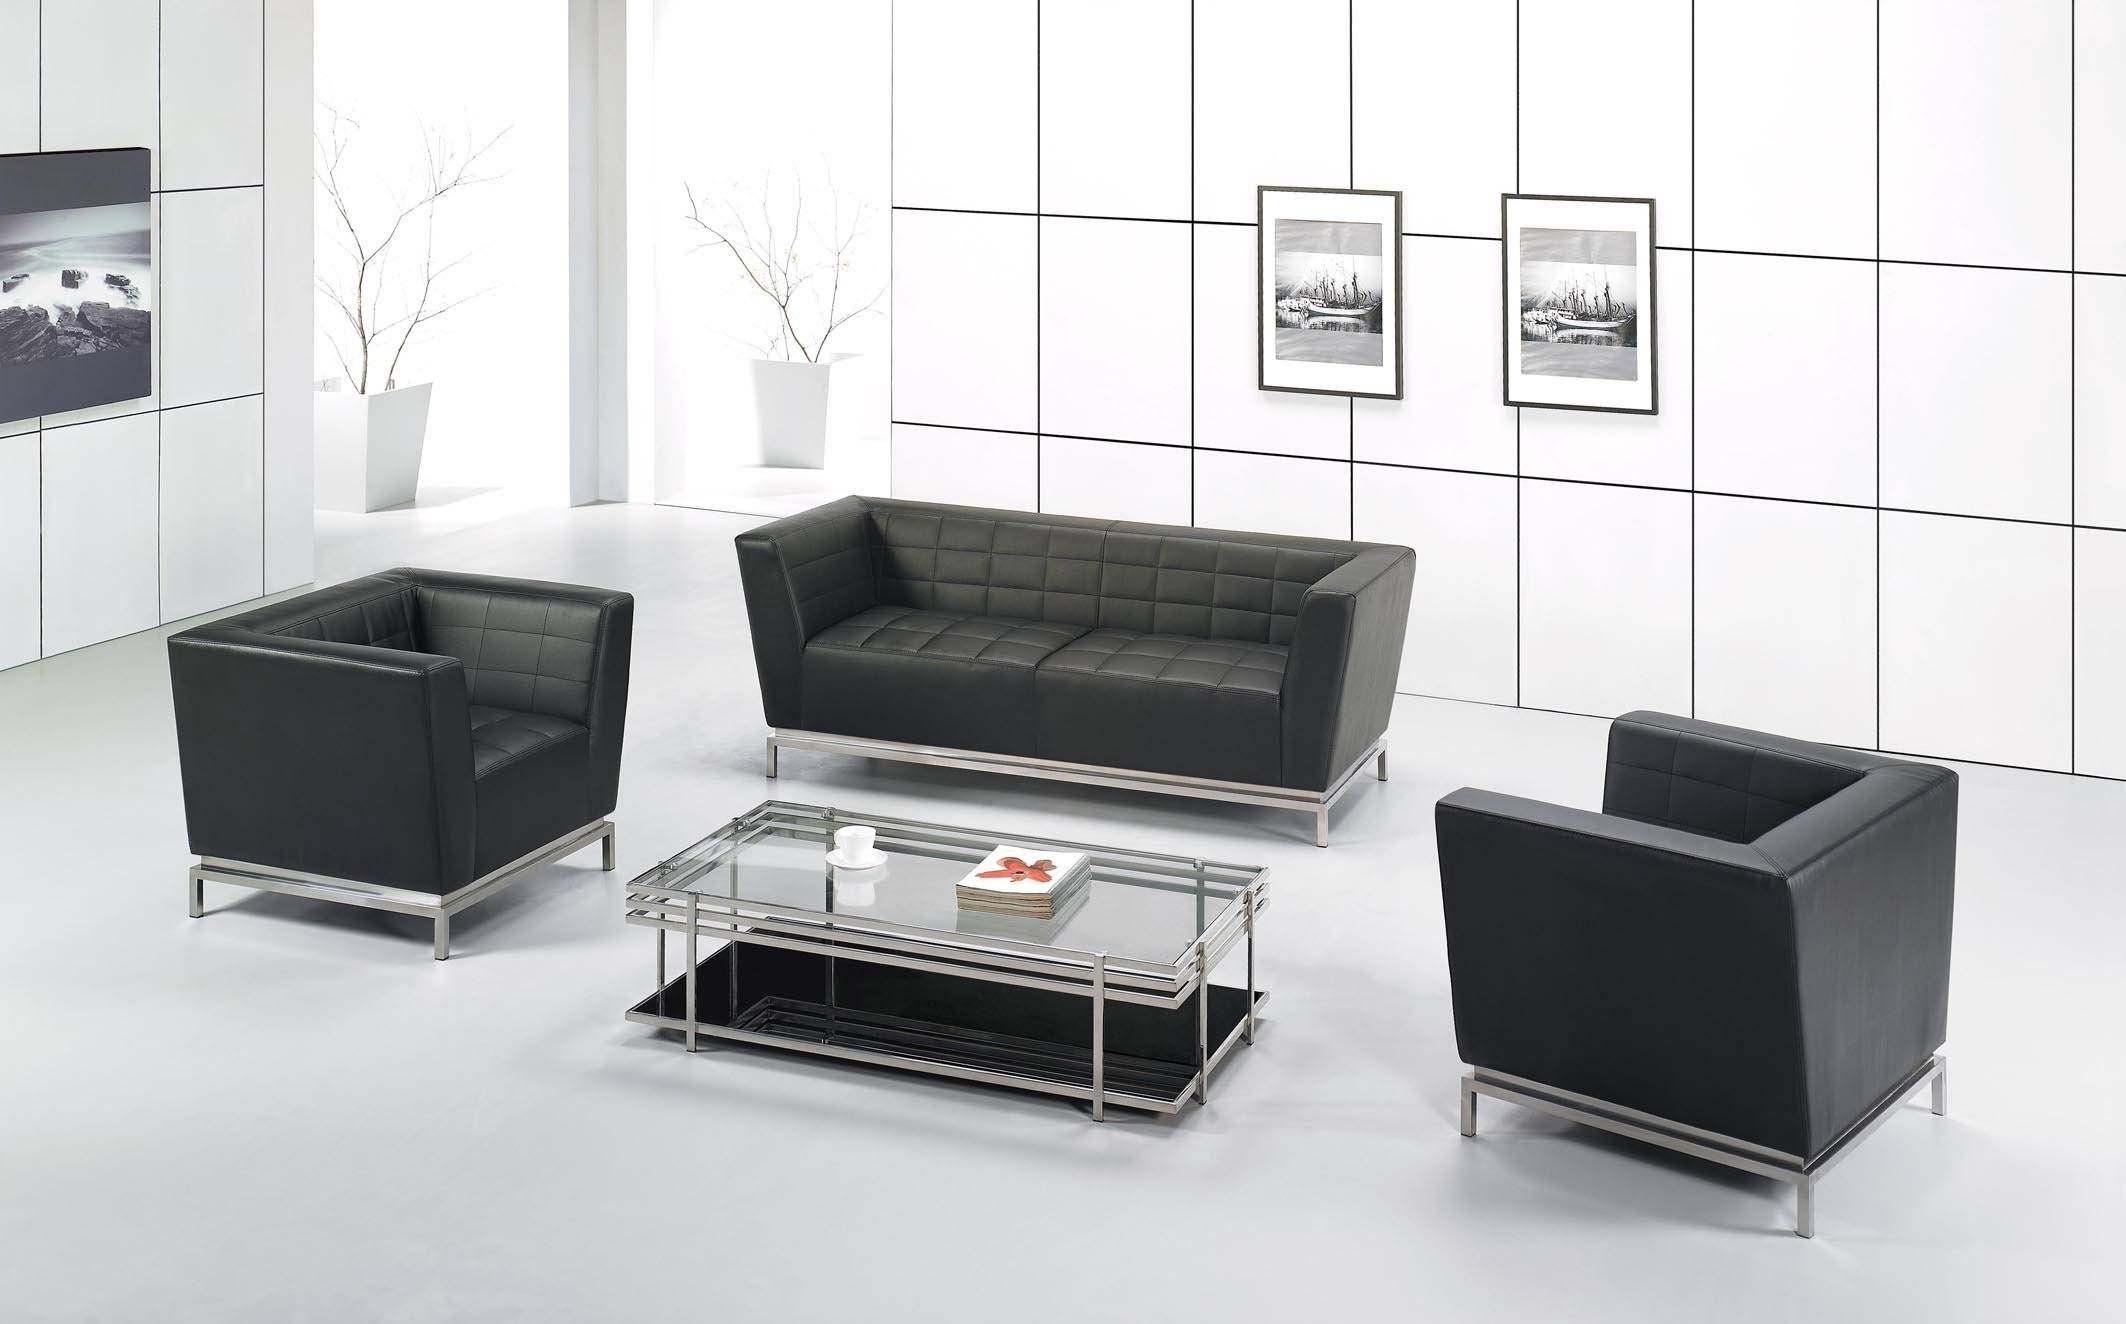 Best 15 of fice Sofas and Chairs